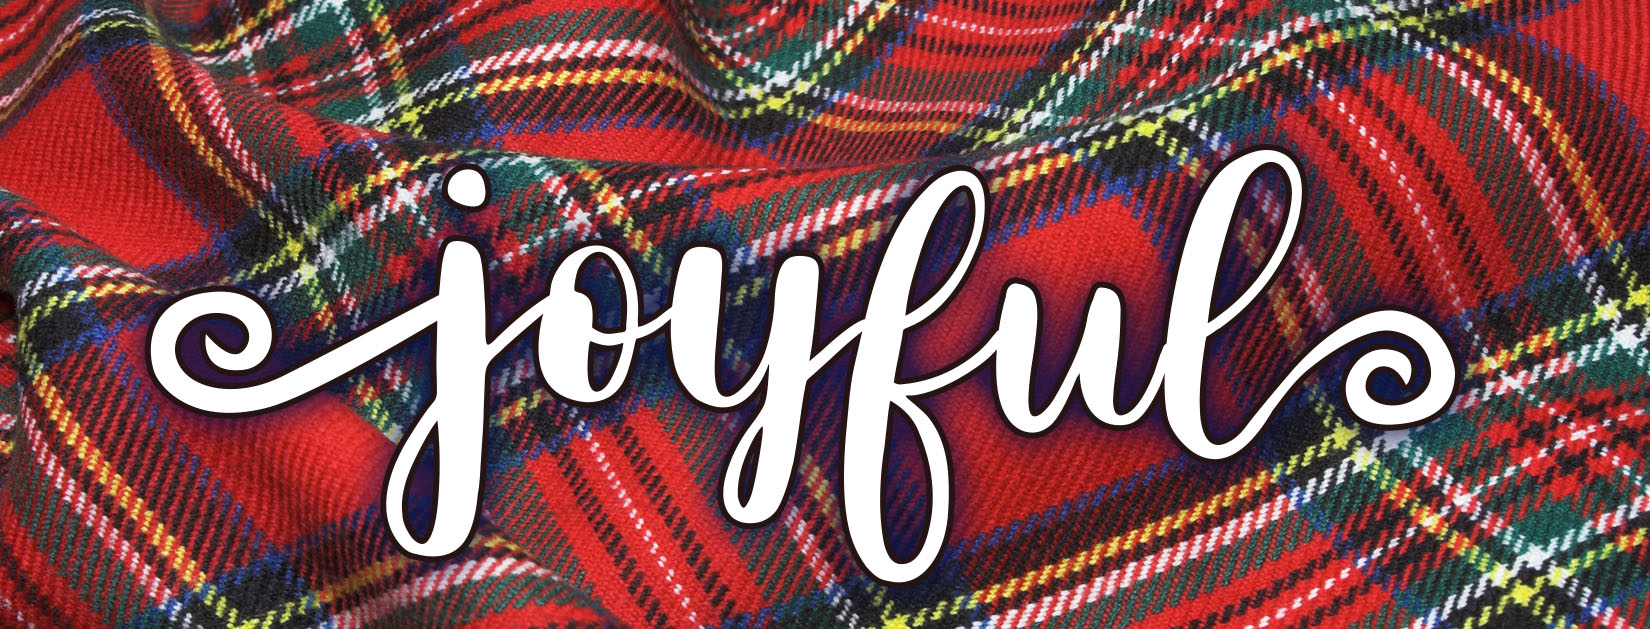 the word joyful on top of tartan plain fabric background